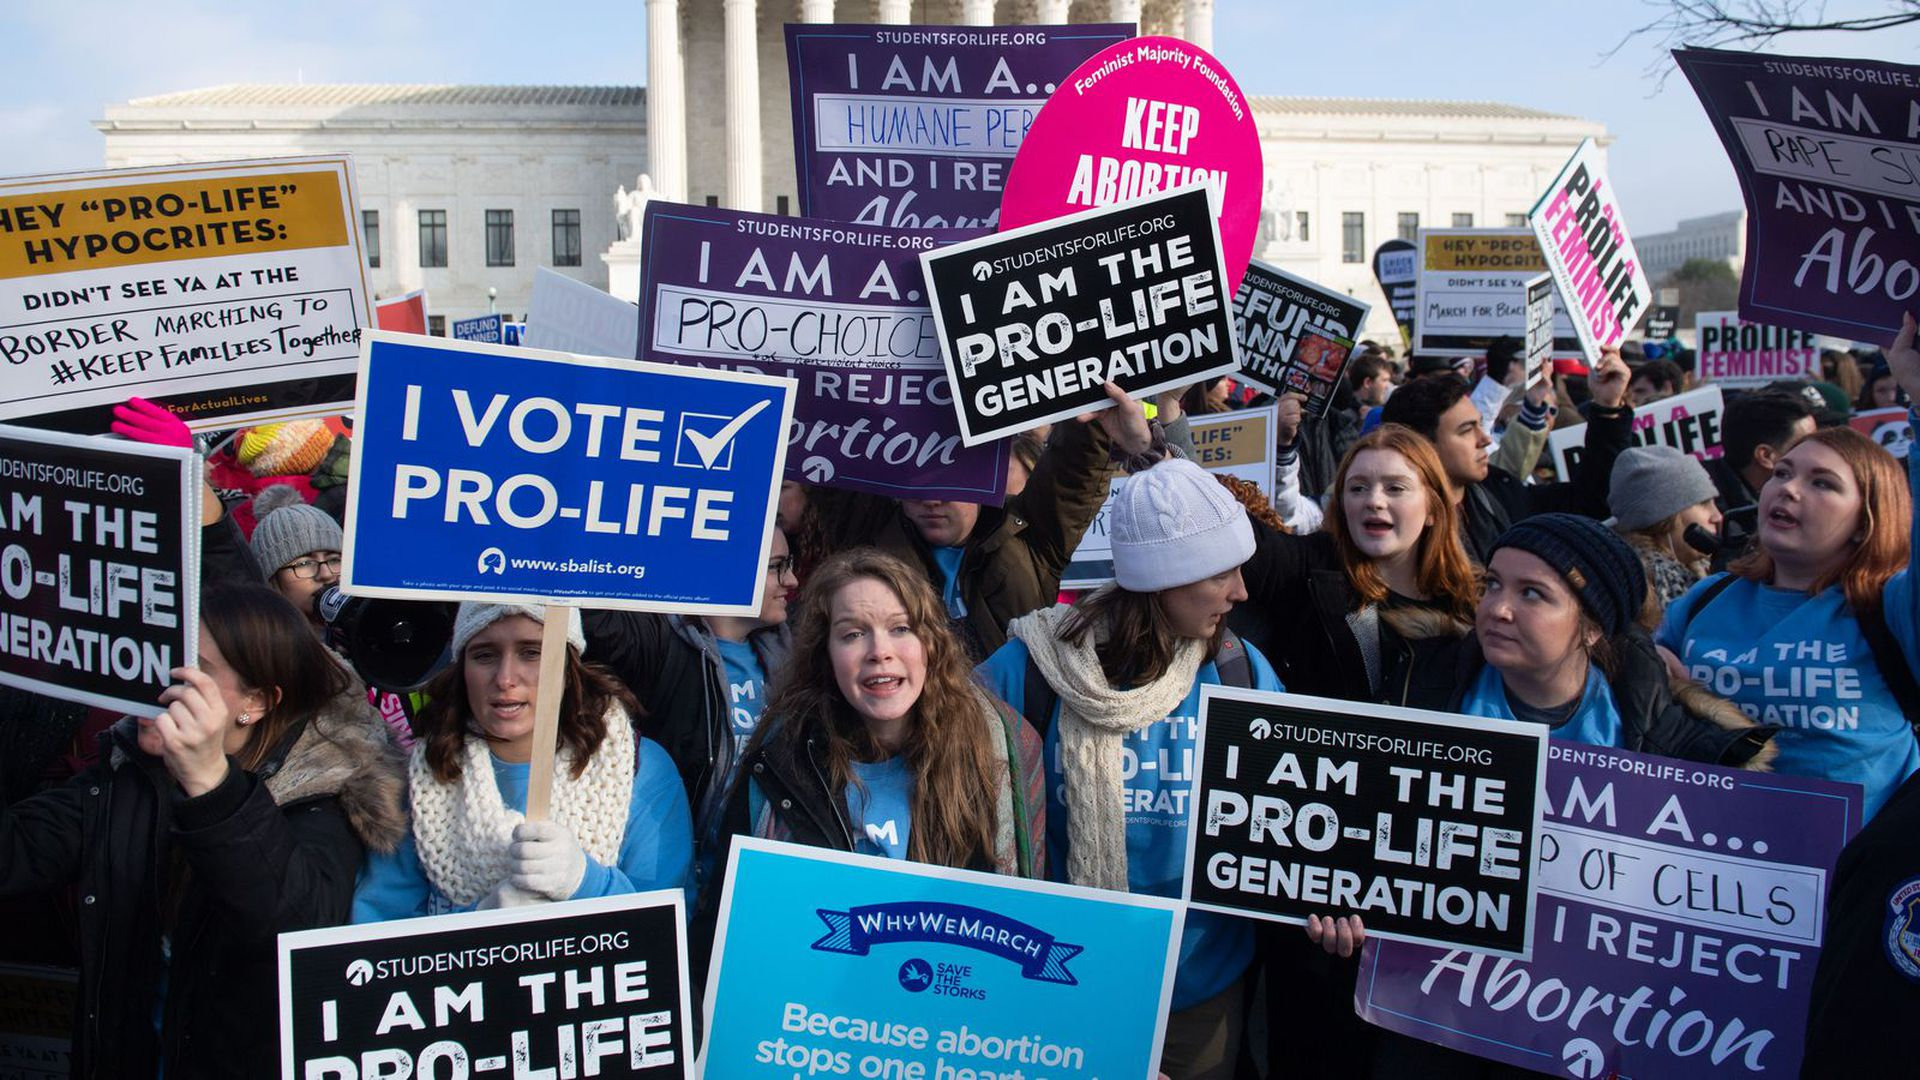 A pro-life rally in Washington, D.C.